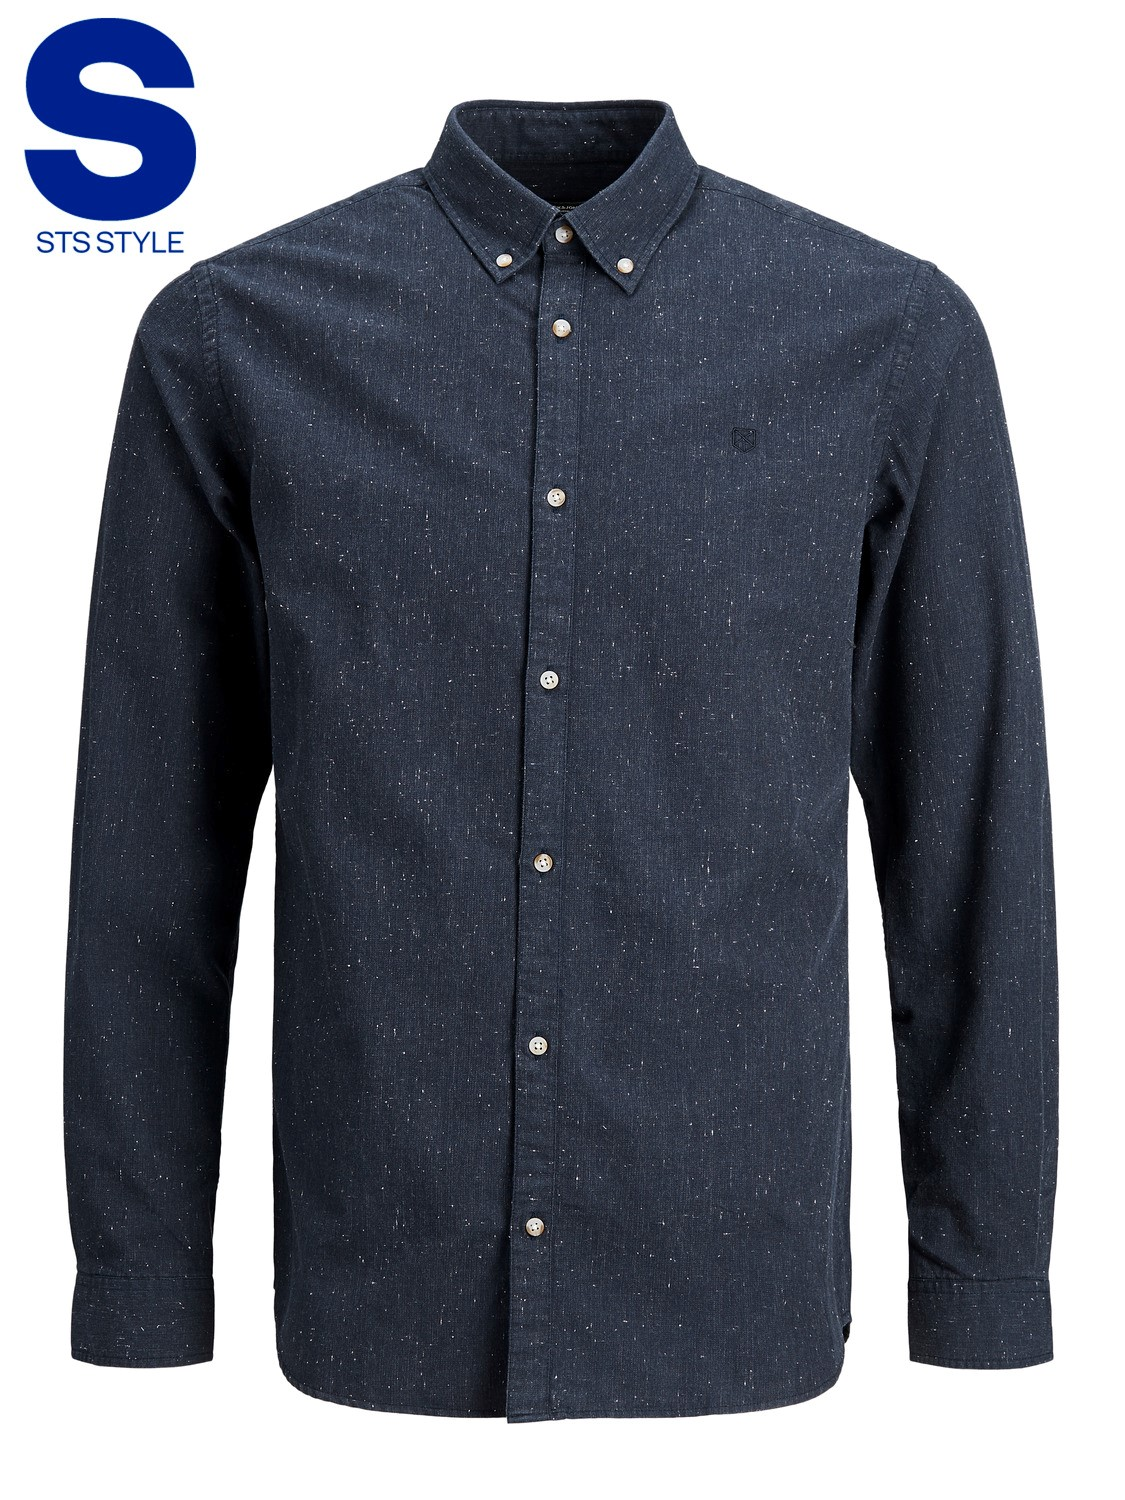 JACK & JONES JPRBLALOGO AUTUMN SHIRT L/S STS